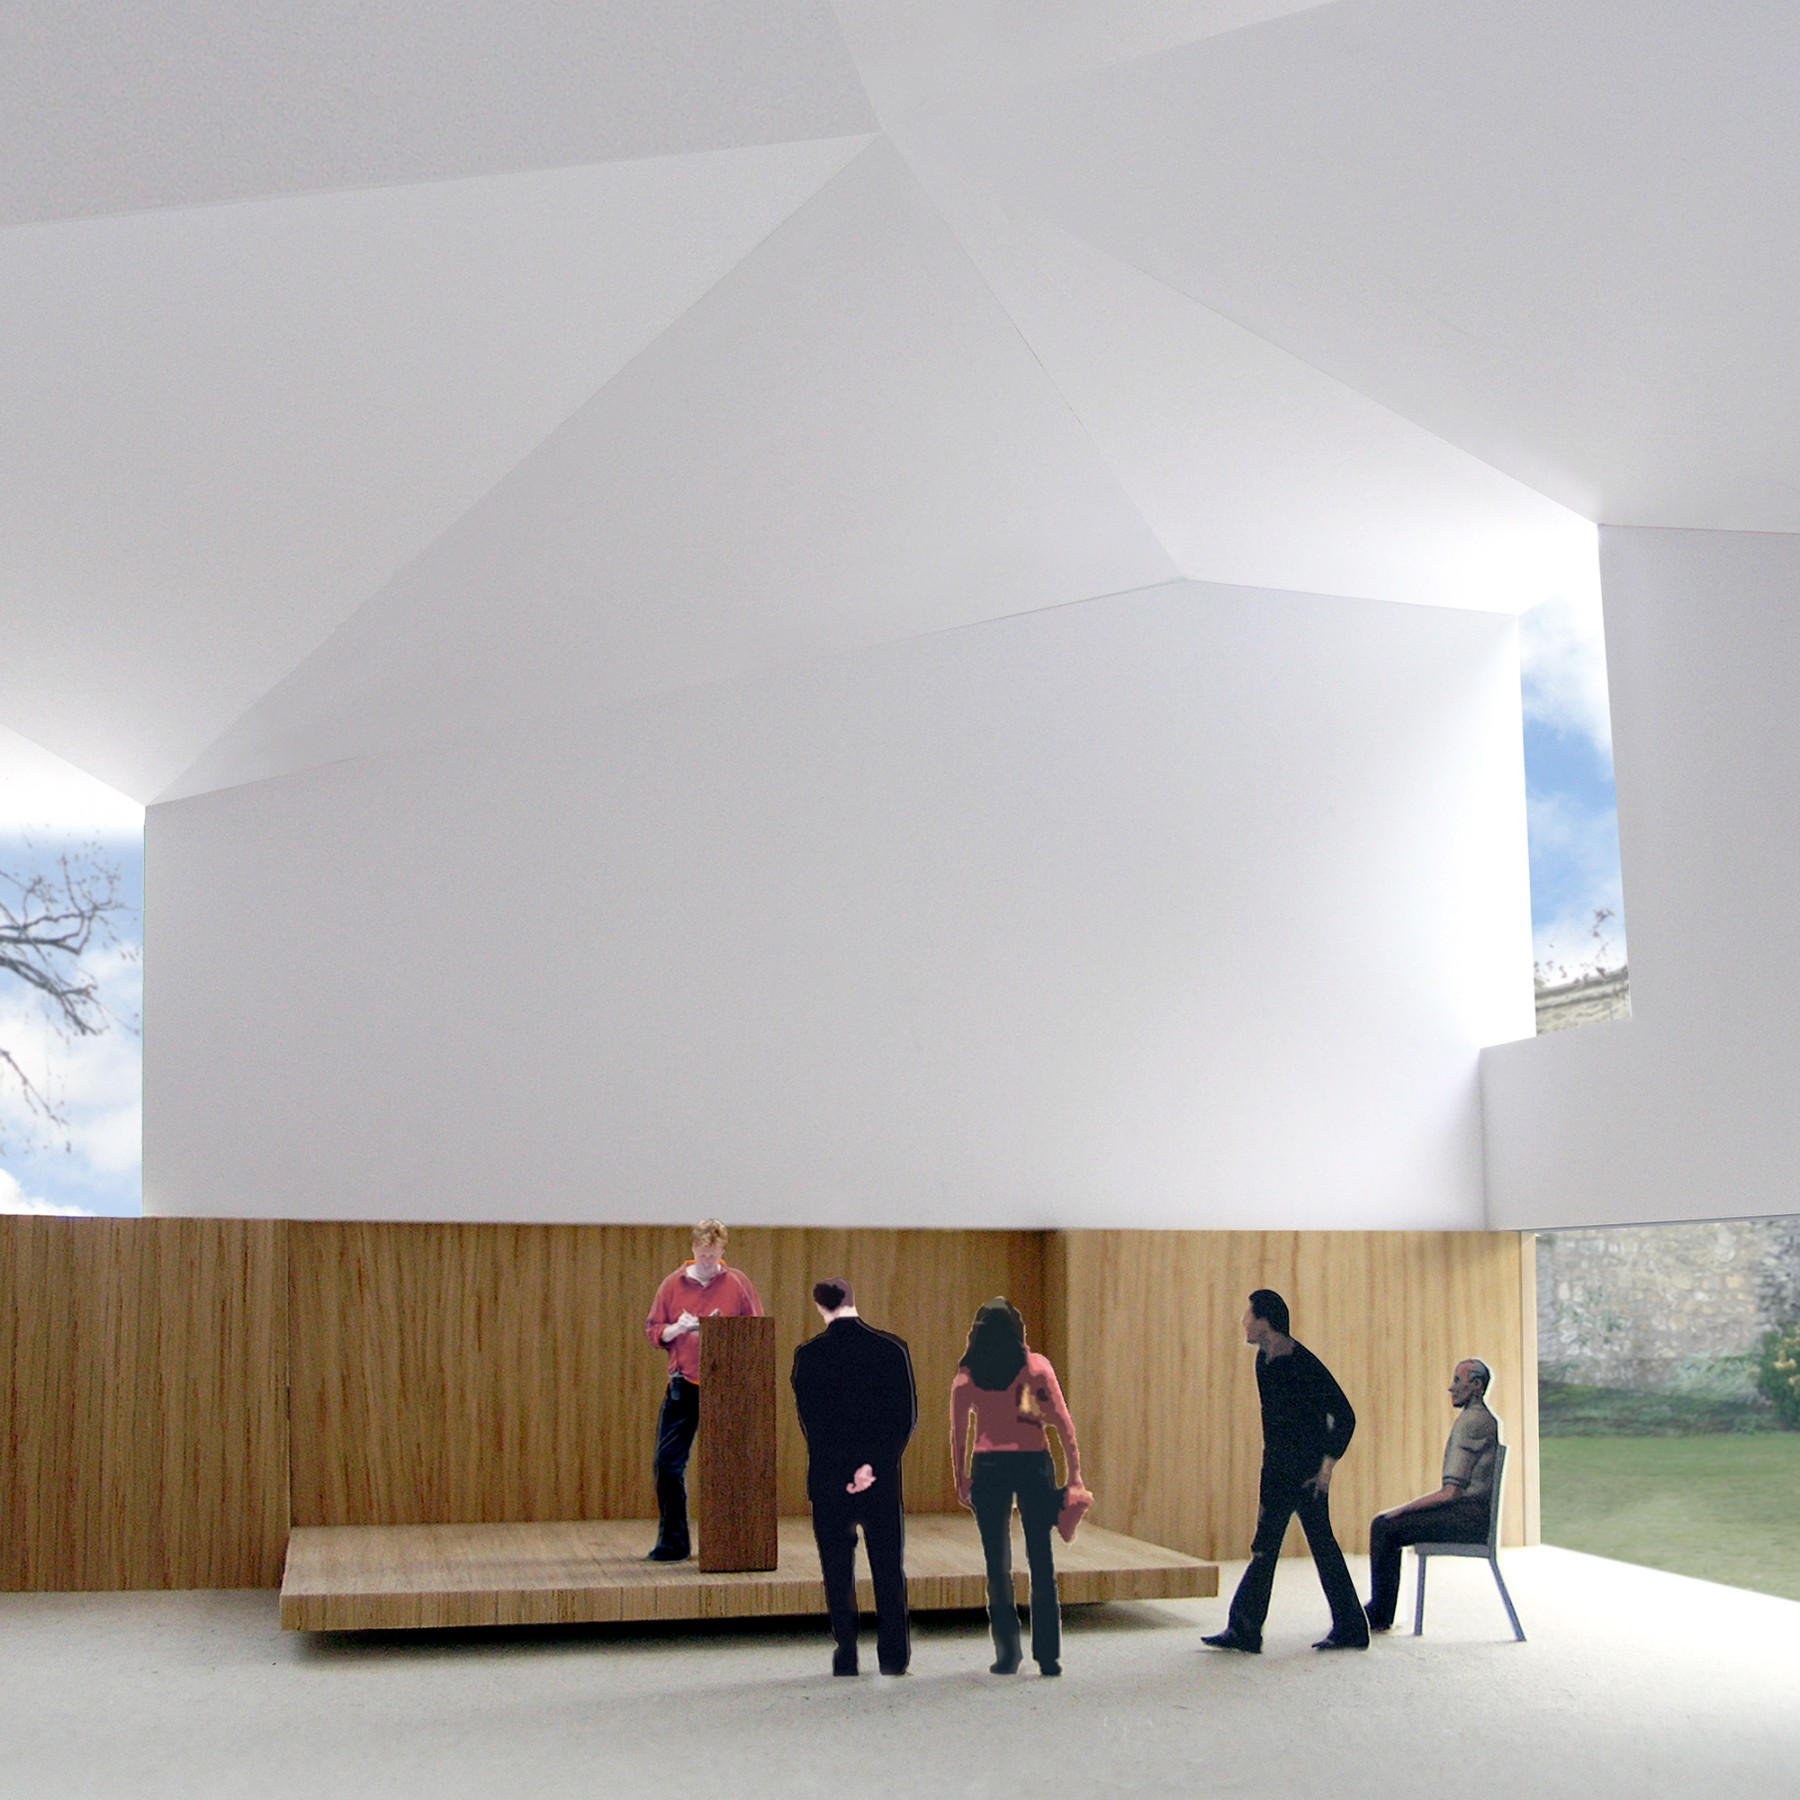 University-oxford-corpus-christie-music-room-Centre-short-list-education-Fellows-Garden-Jamie-Fobert-architects-1